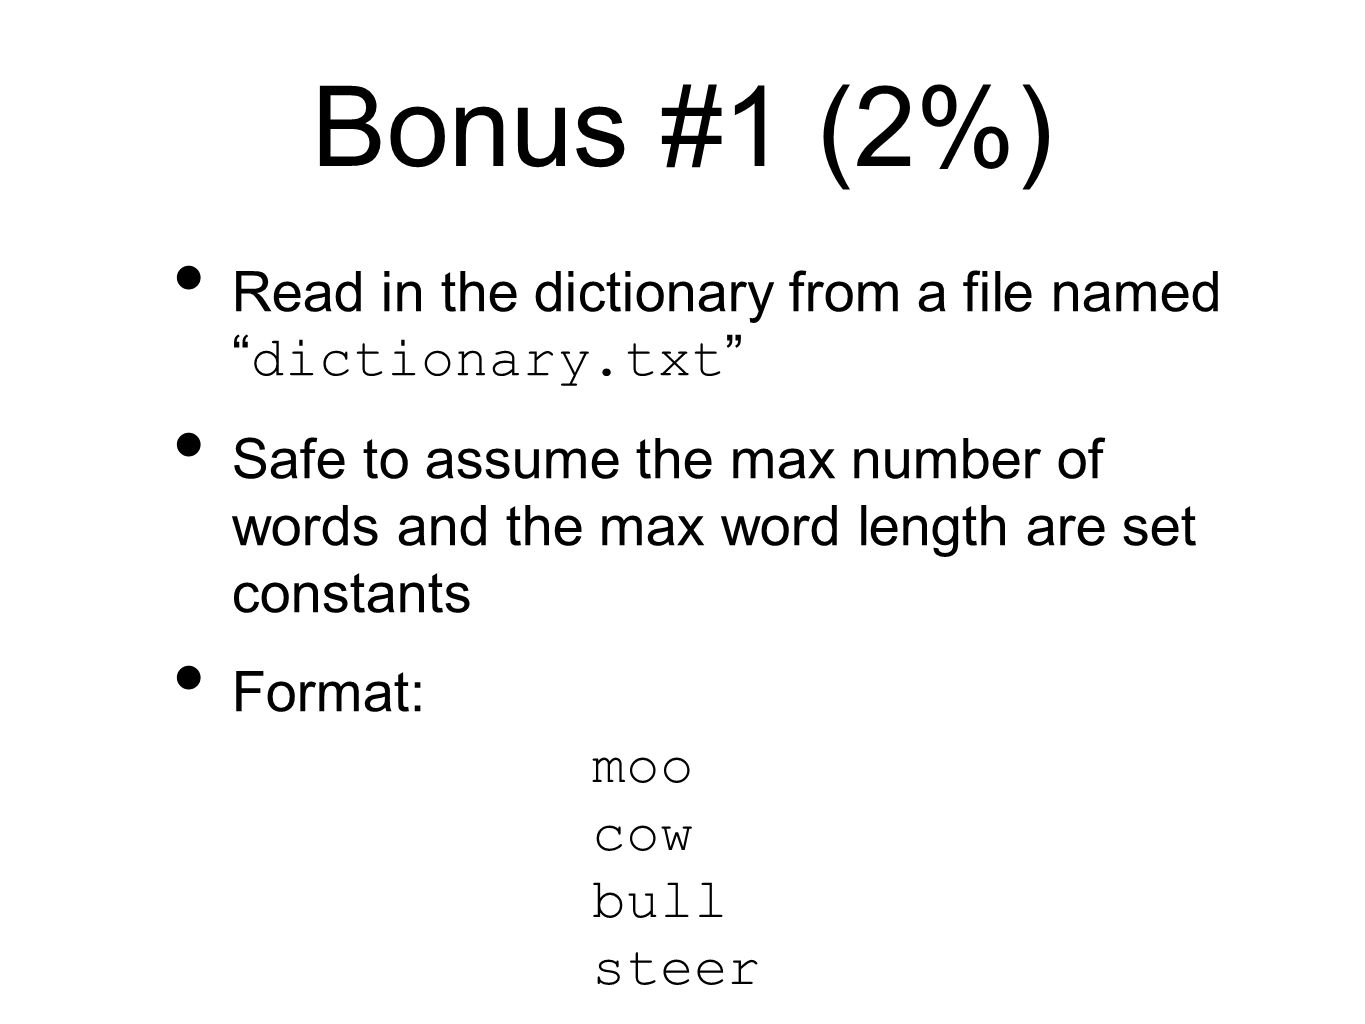 Bonus #1 (2%) Read in the dictionary from a file named dictionary.txt Safe to assume the max number of words and the max word length are set constants Format: moo cow bull steer